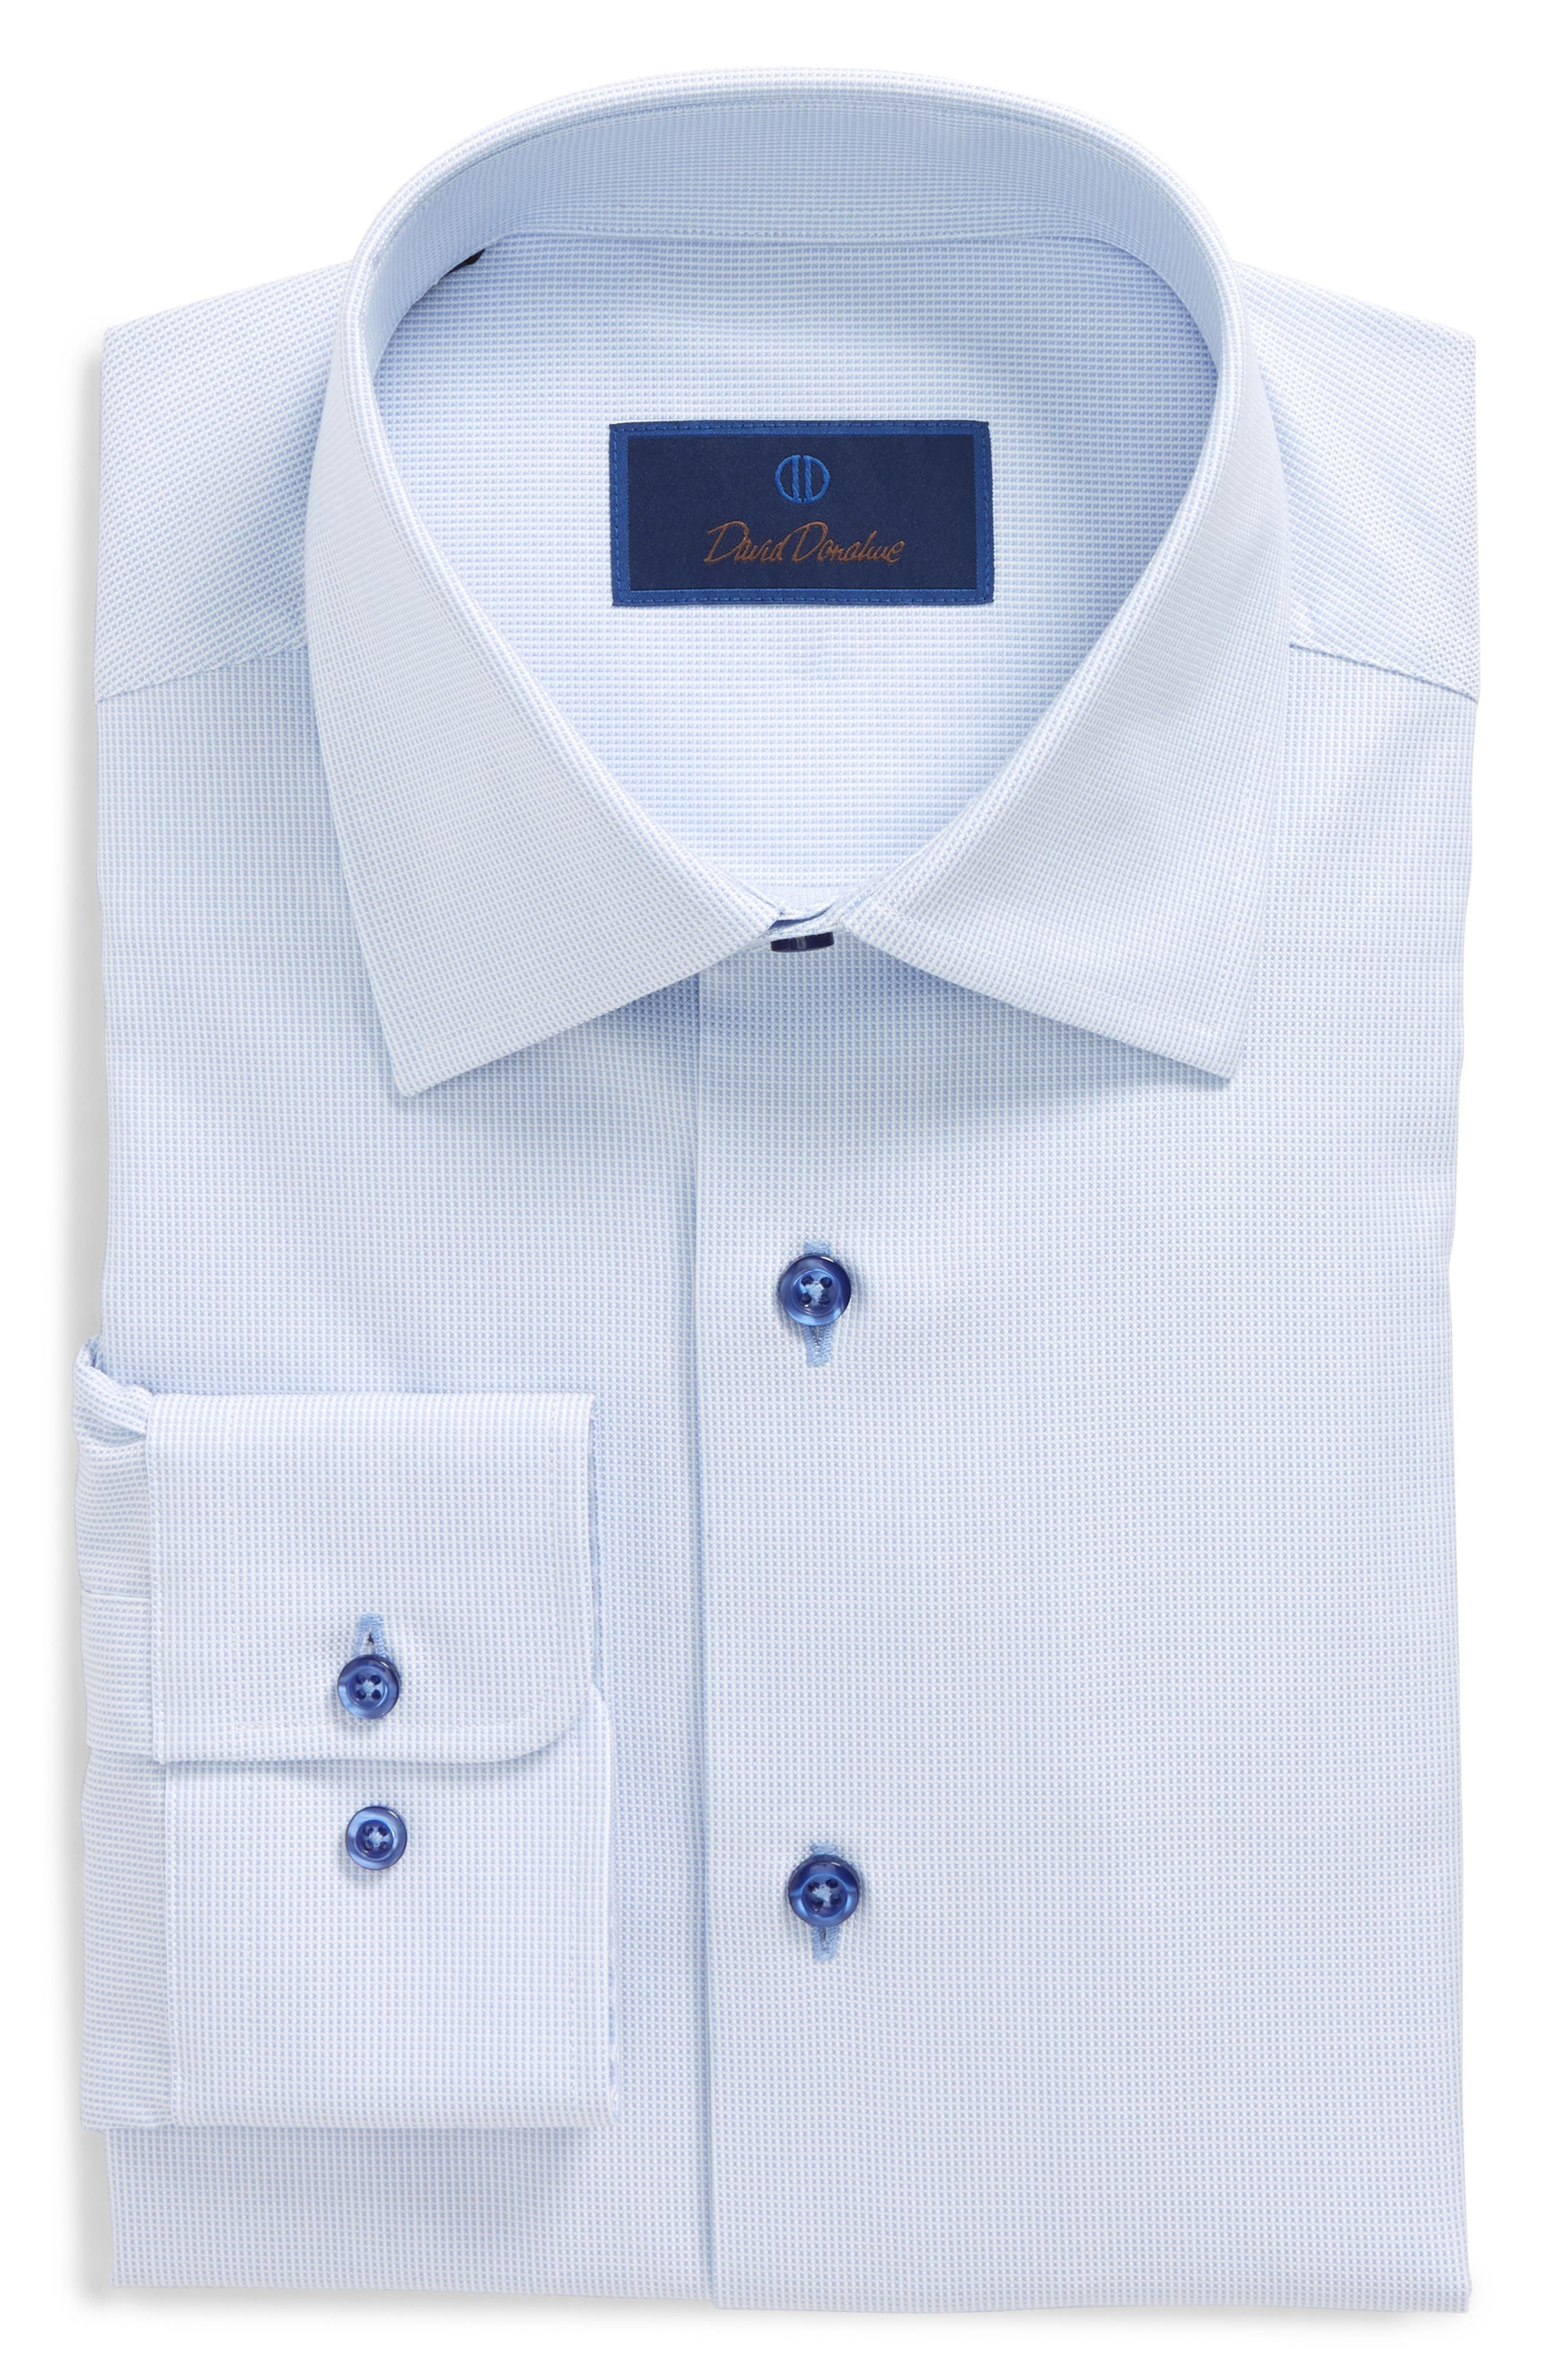 Regular Fit Solid Dress Shirt,                             Main thumbnail 1, color,                             423